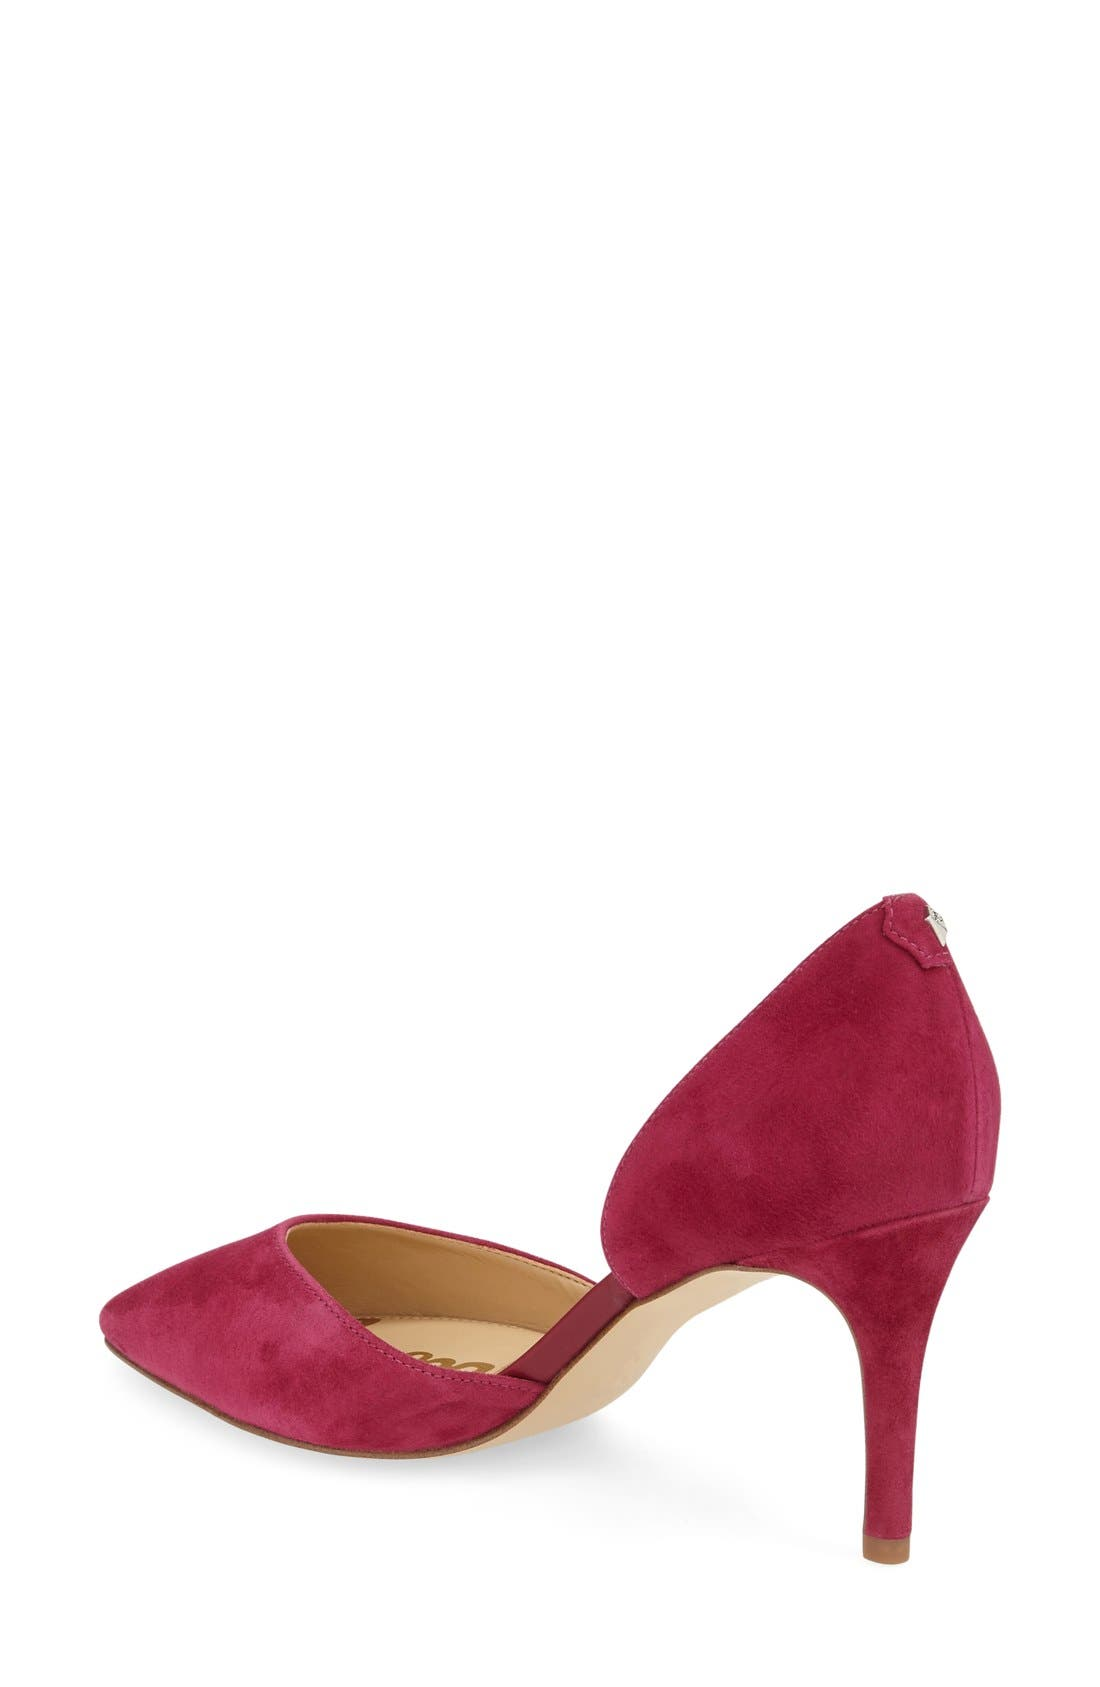 'Telsa' d'Orsay Pointy Toe Pump,                             Alternate thumbnail 31, color,